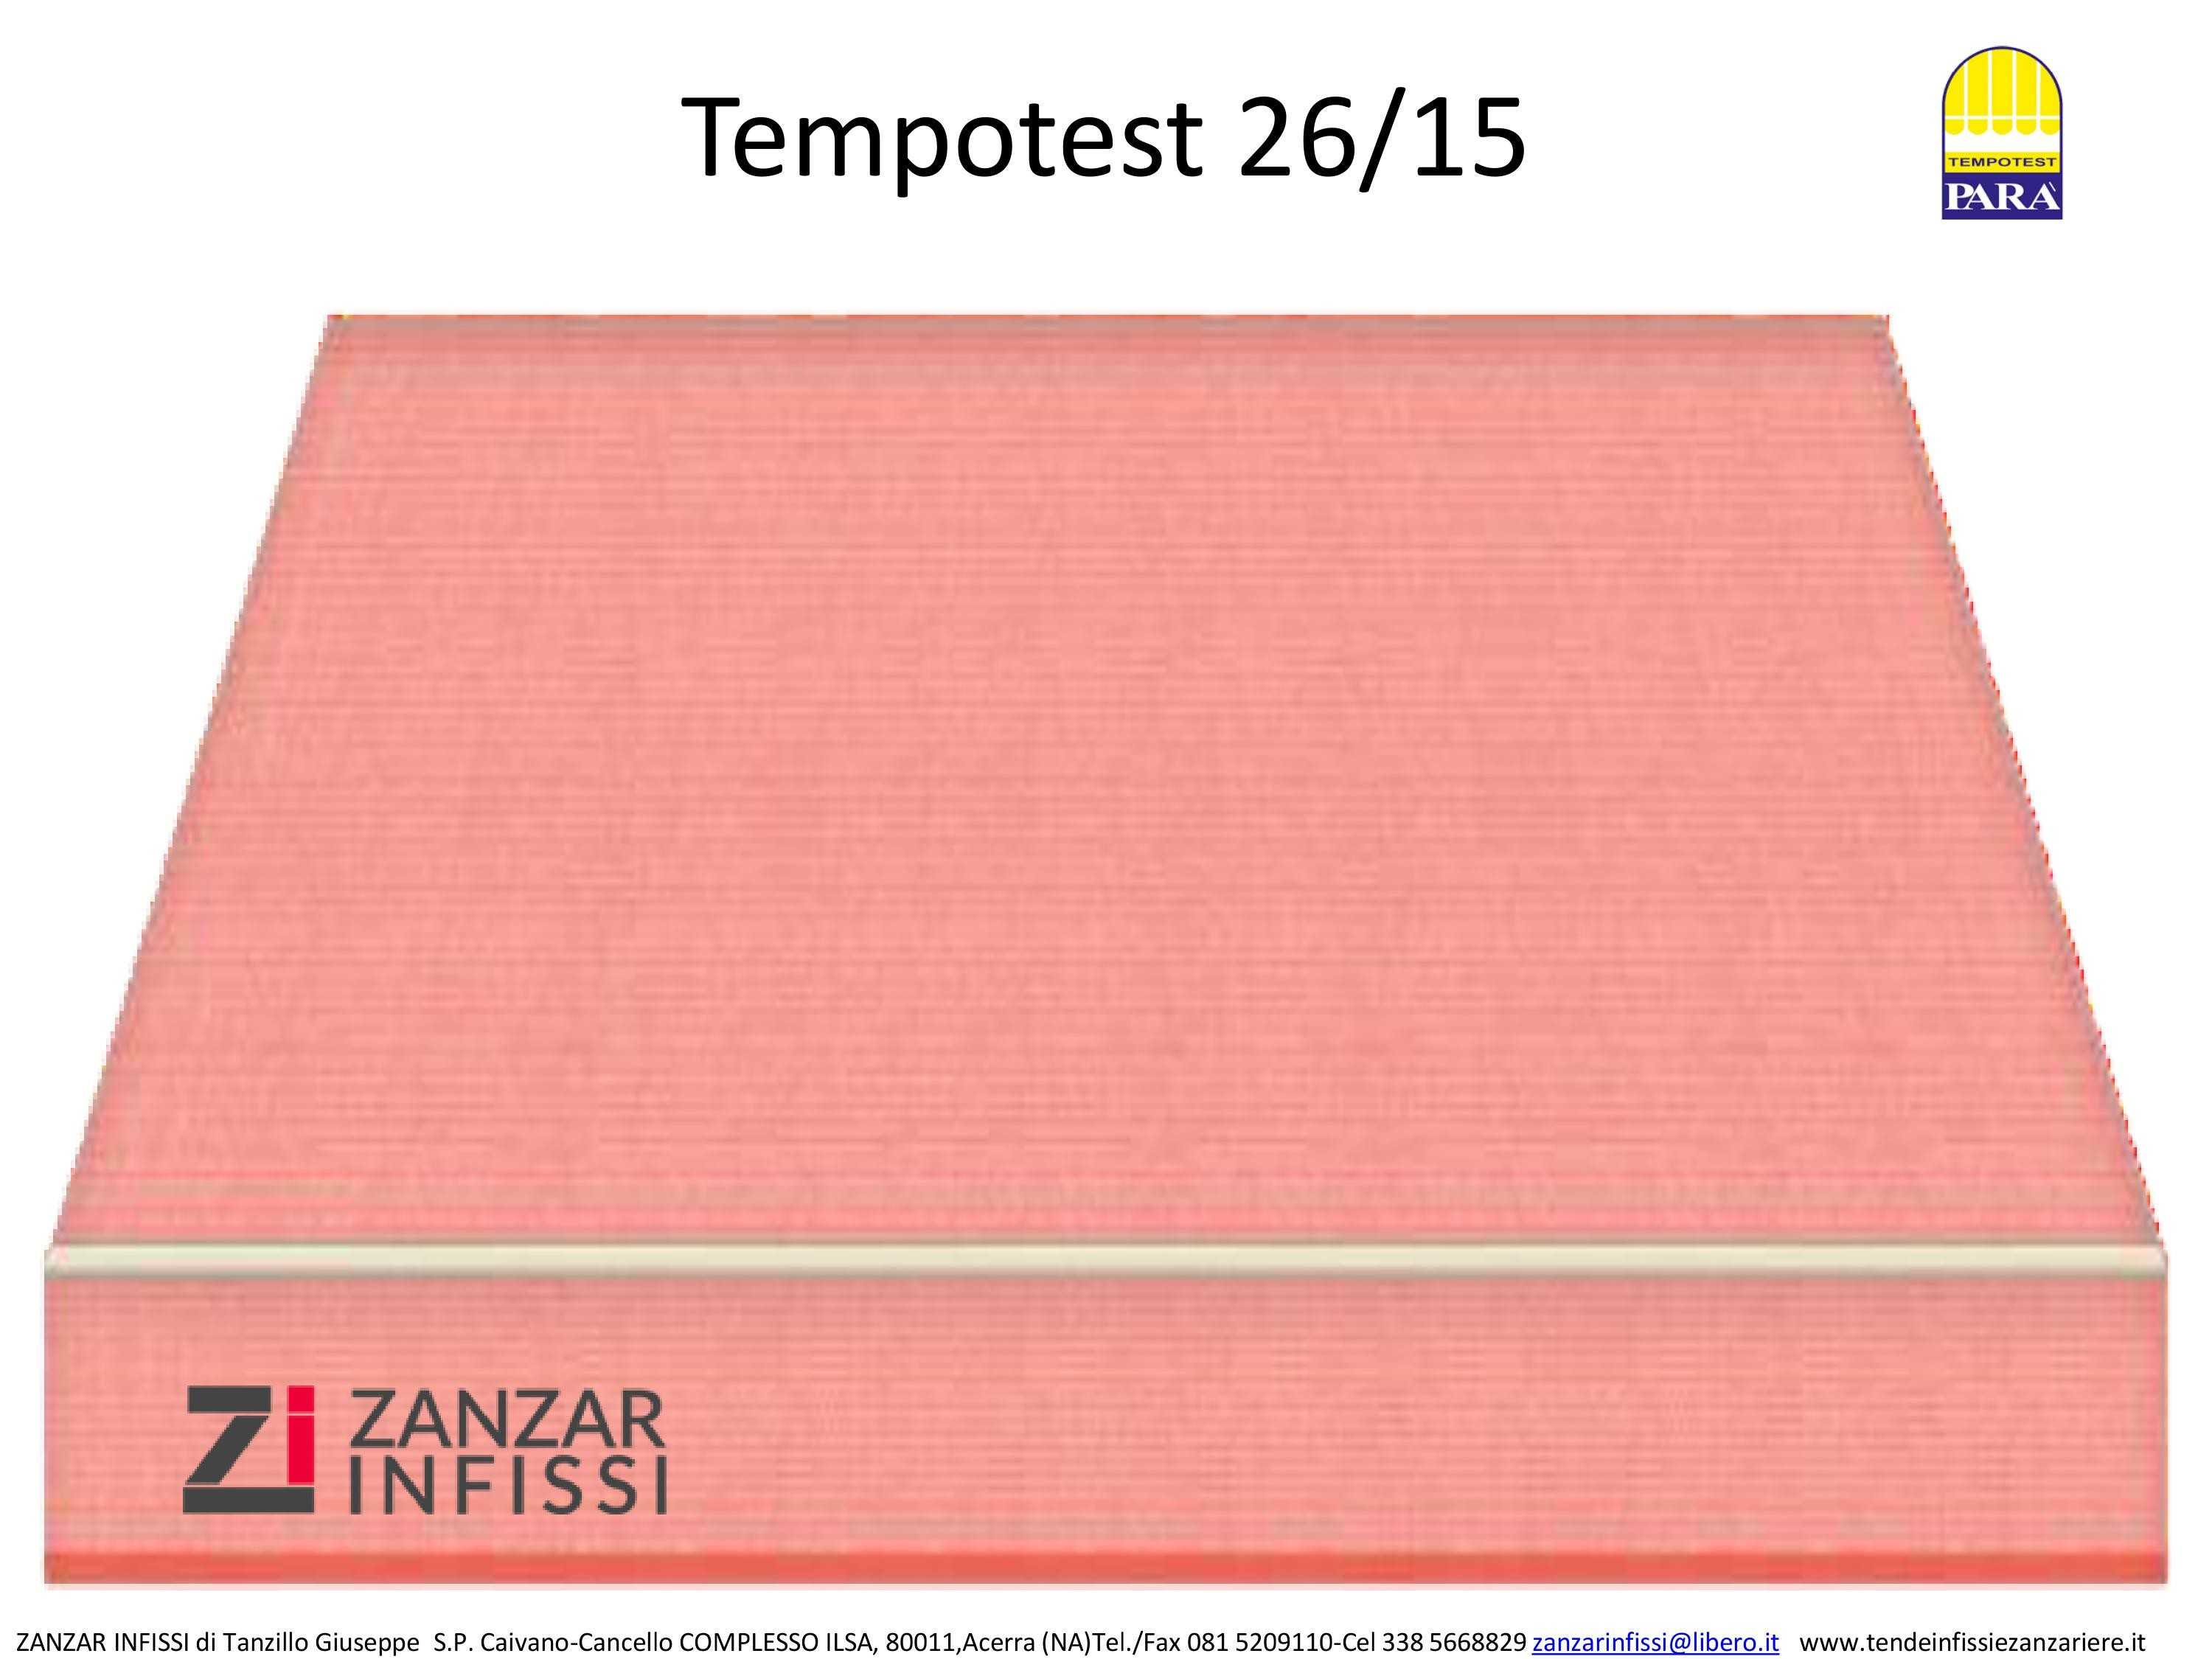 Tempotest 26/15